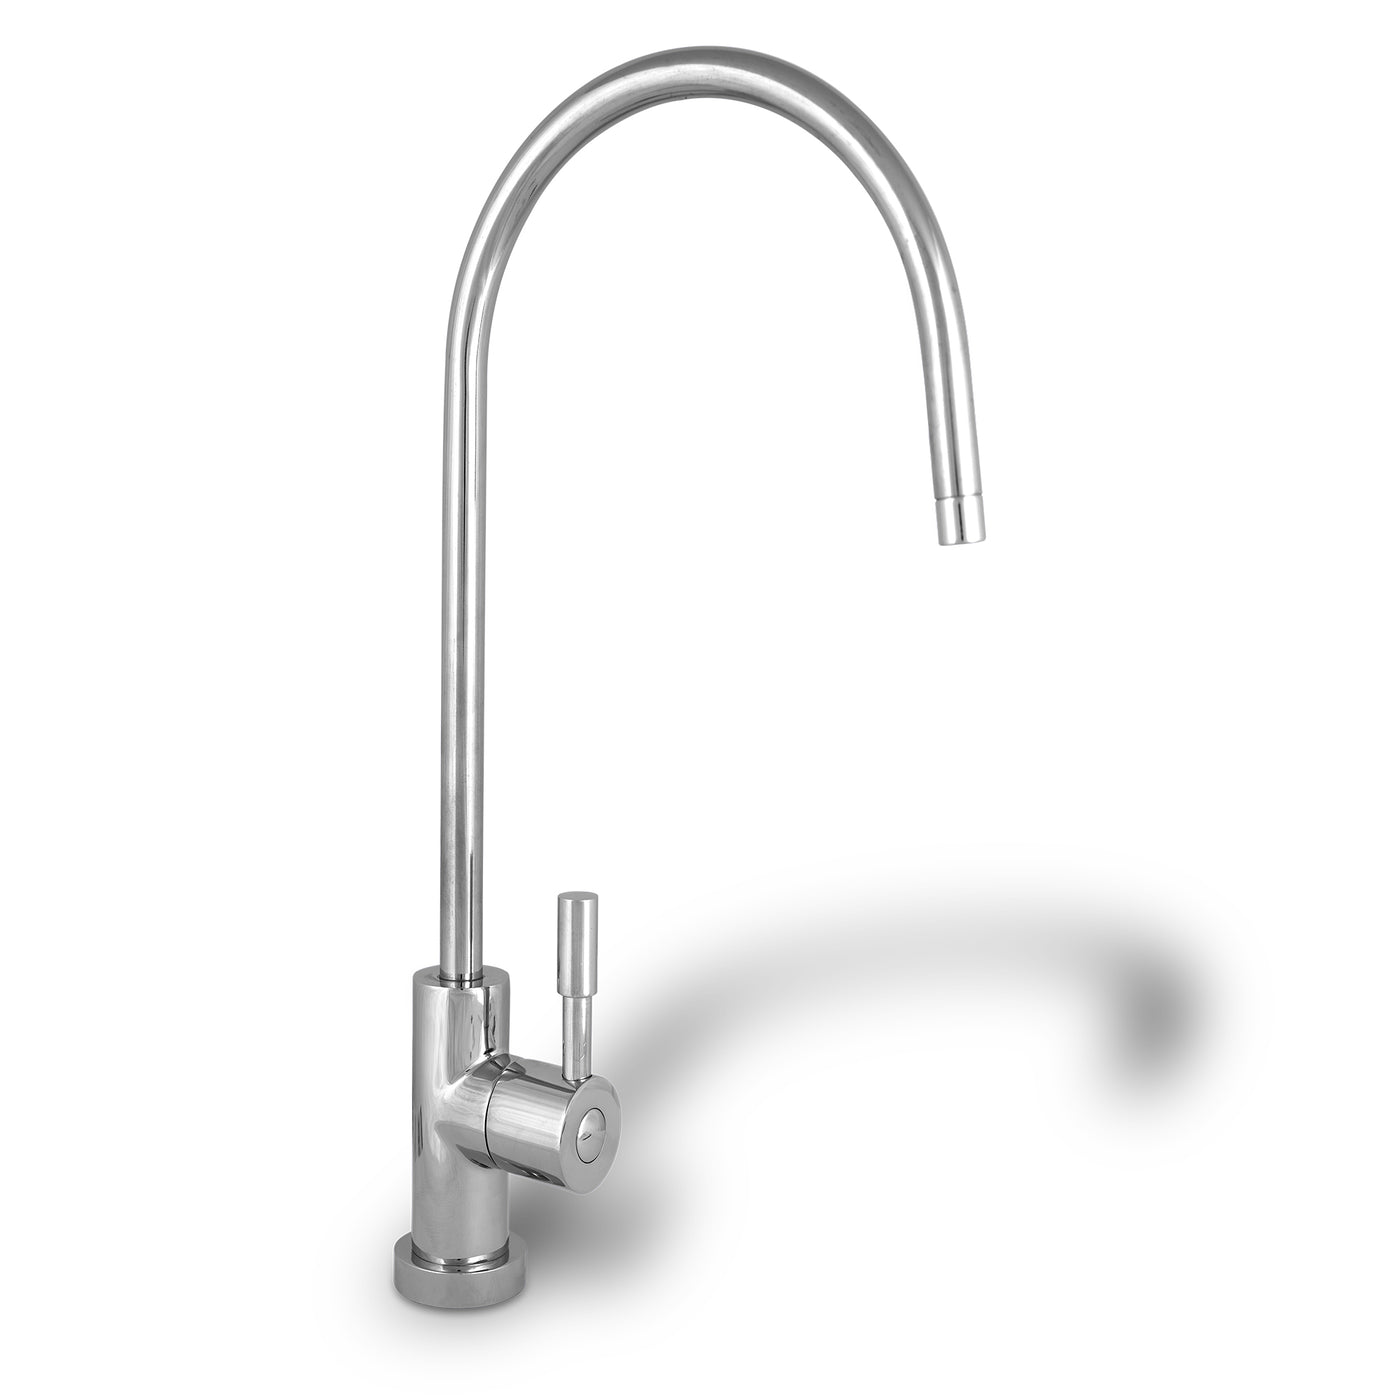 Polished Chrome European High Spout Drinking Water Faucet | RONAQUA